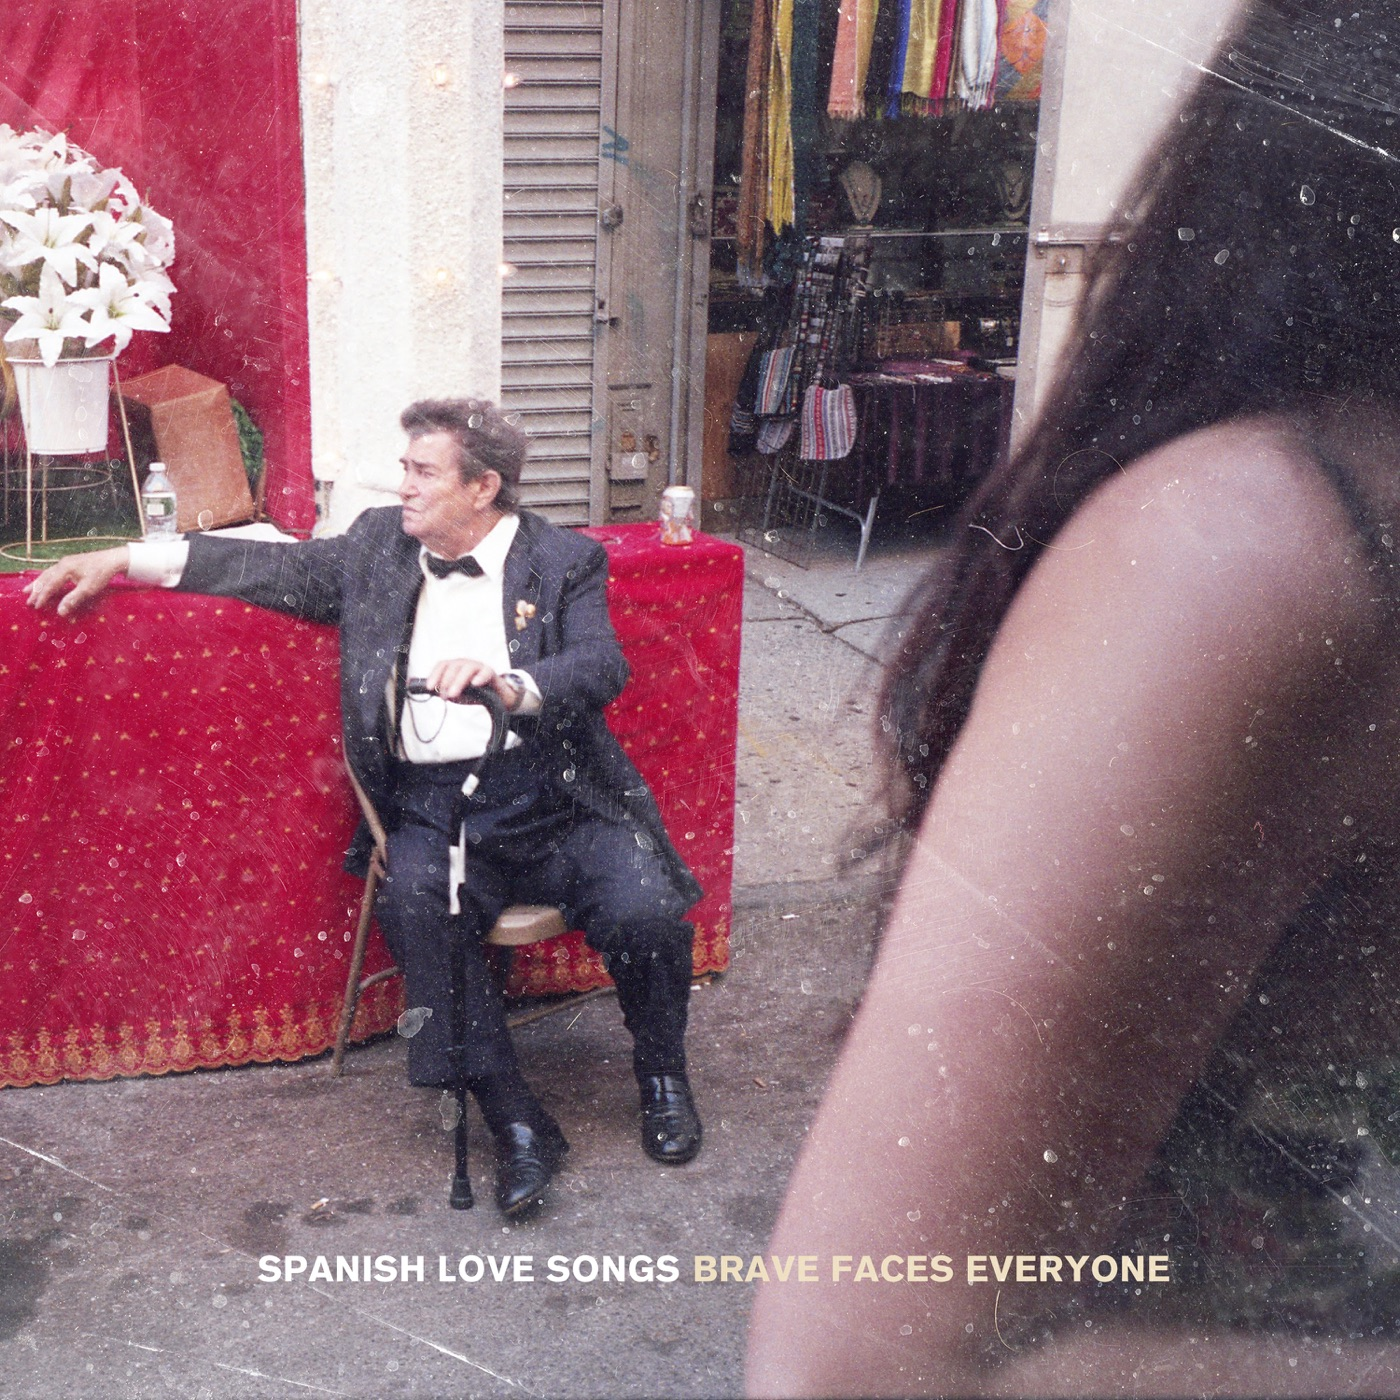 Spanish Love Songs - Brave Faces Everyone (2020)